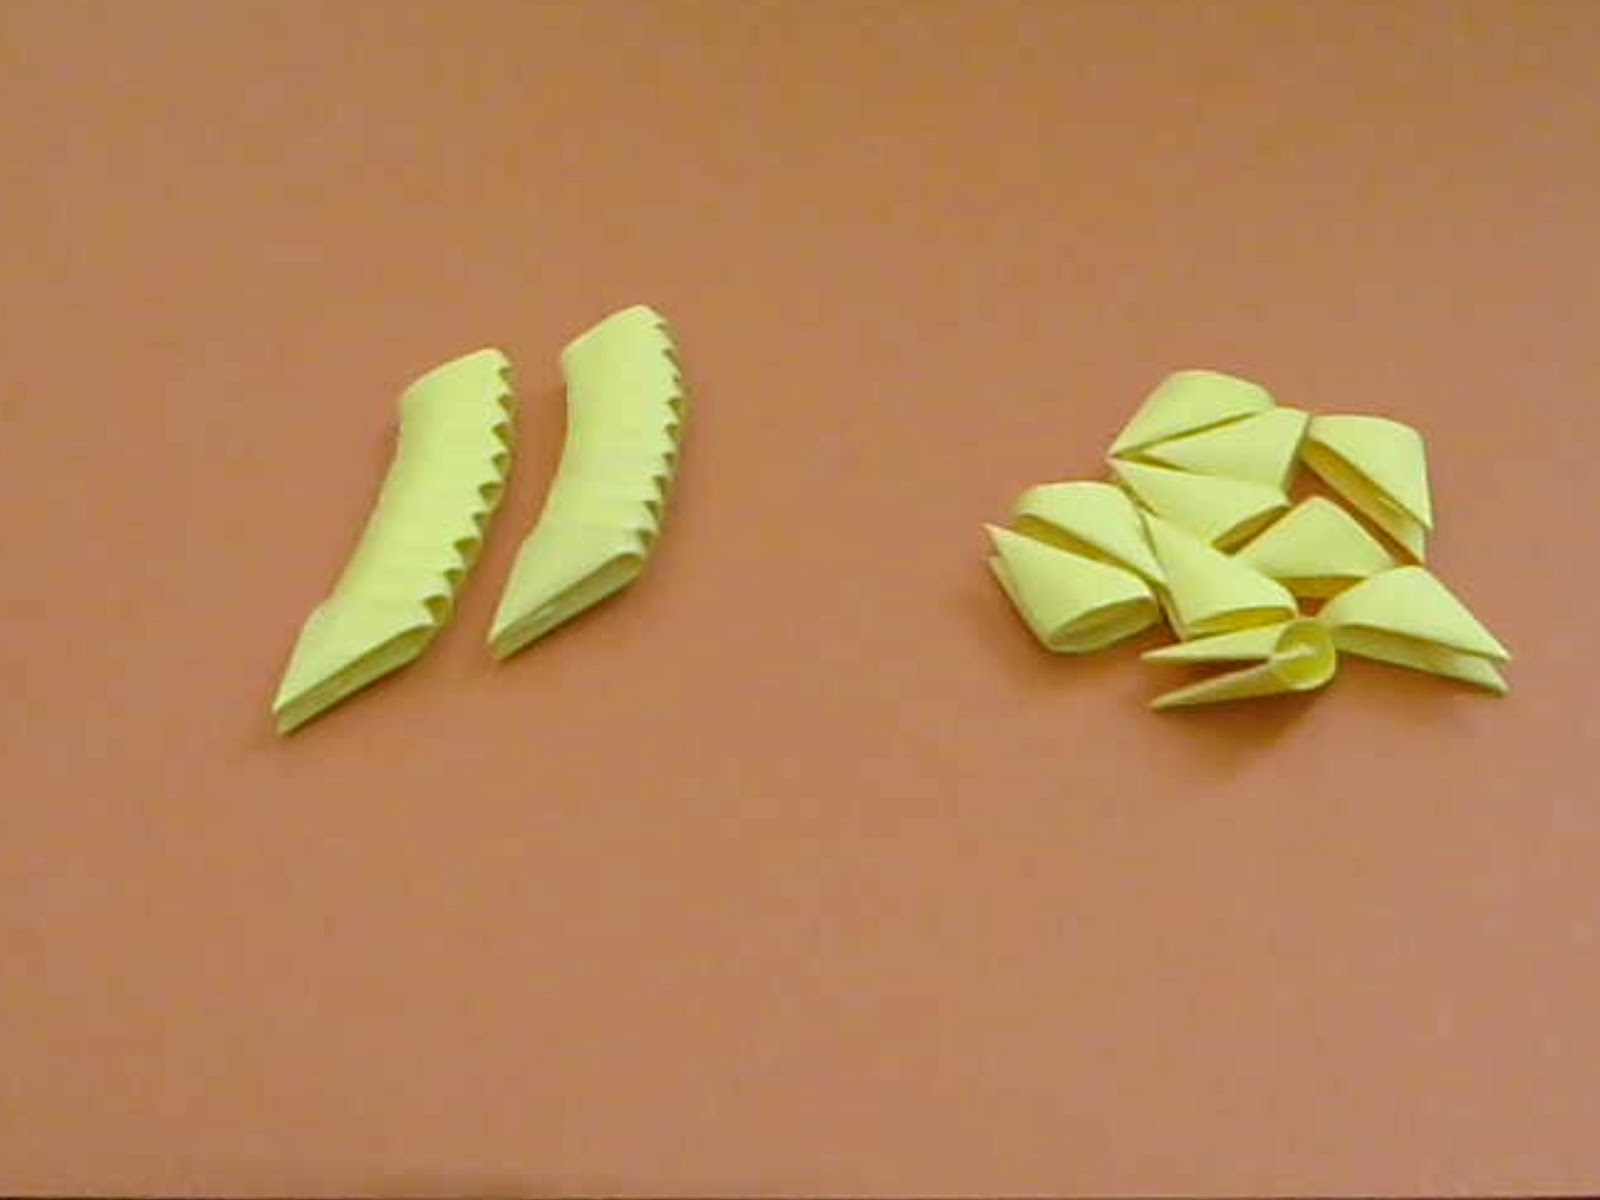 Razcapapercraft: How to Make 3D Origami Pieces - photo#31